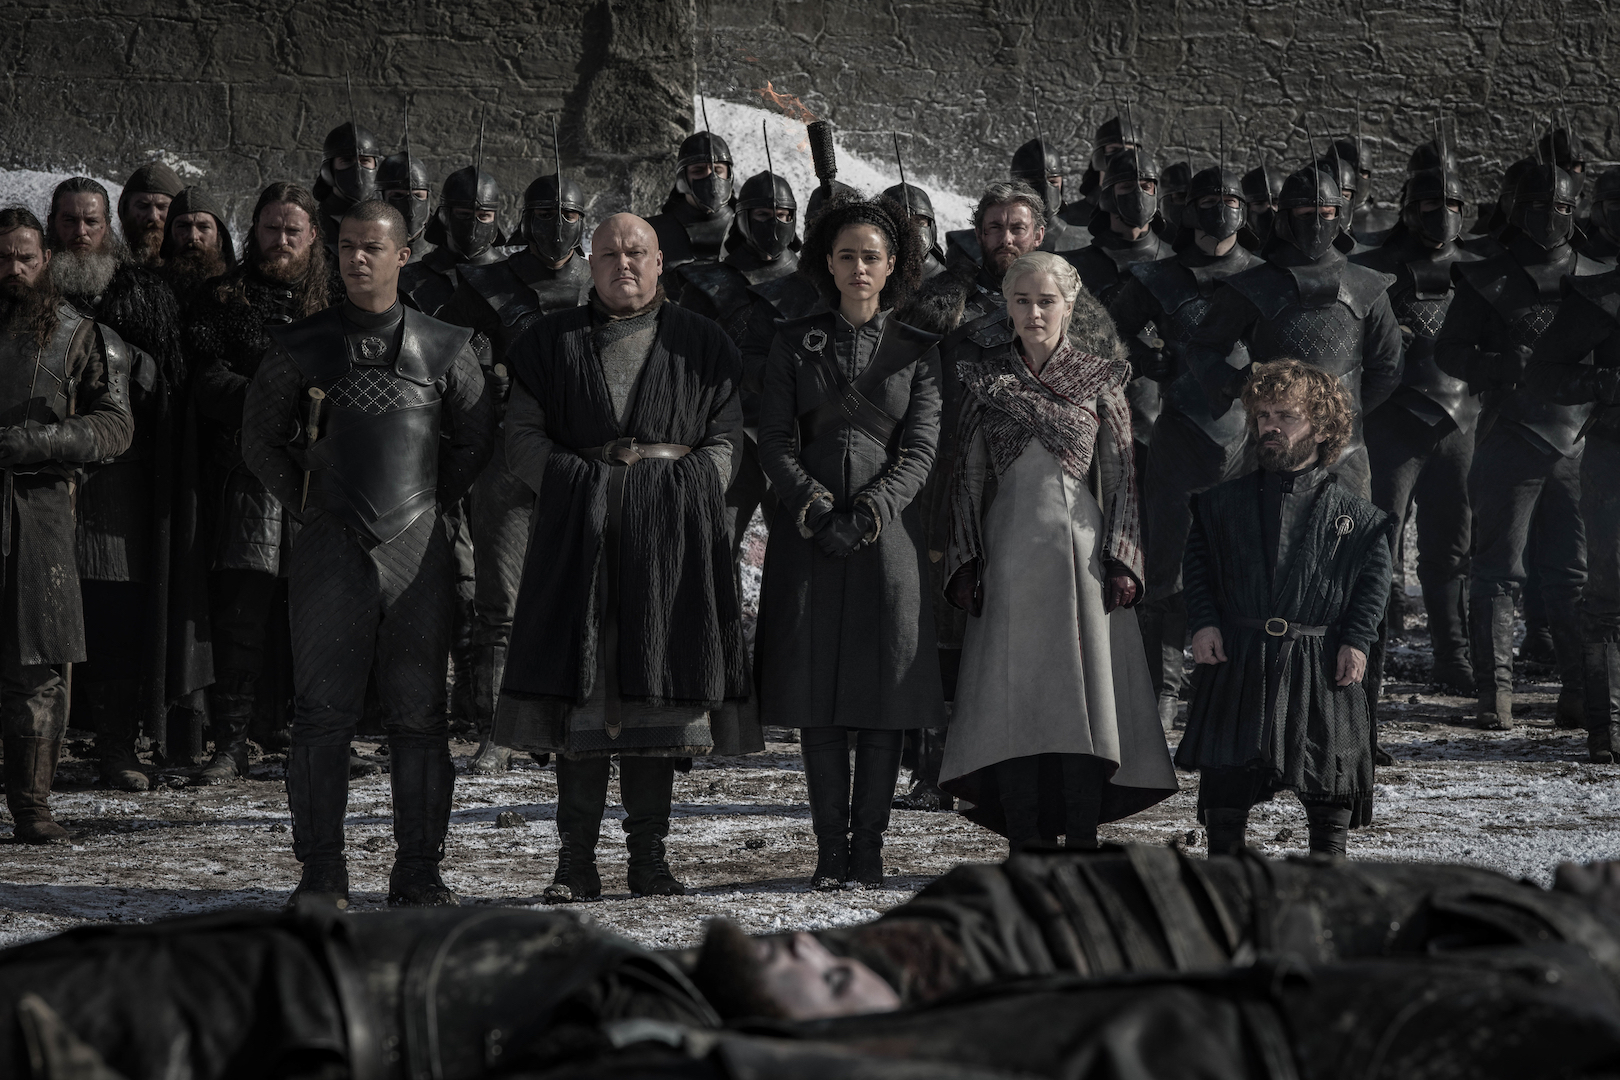 """Game of Thrones S8, E4 """"The Last of the Starks"""" review: Firmly reminds us why we love this show"""